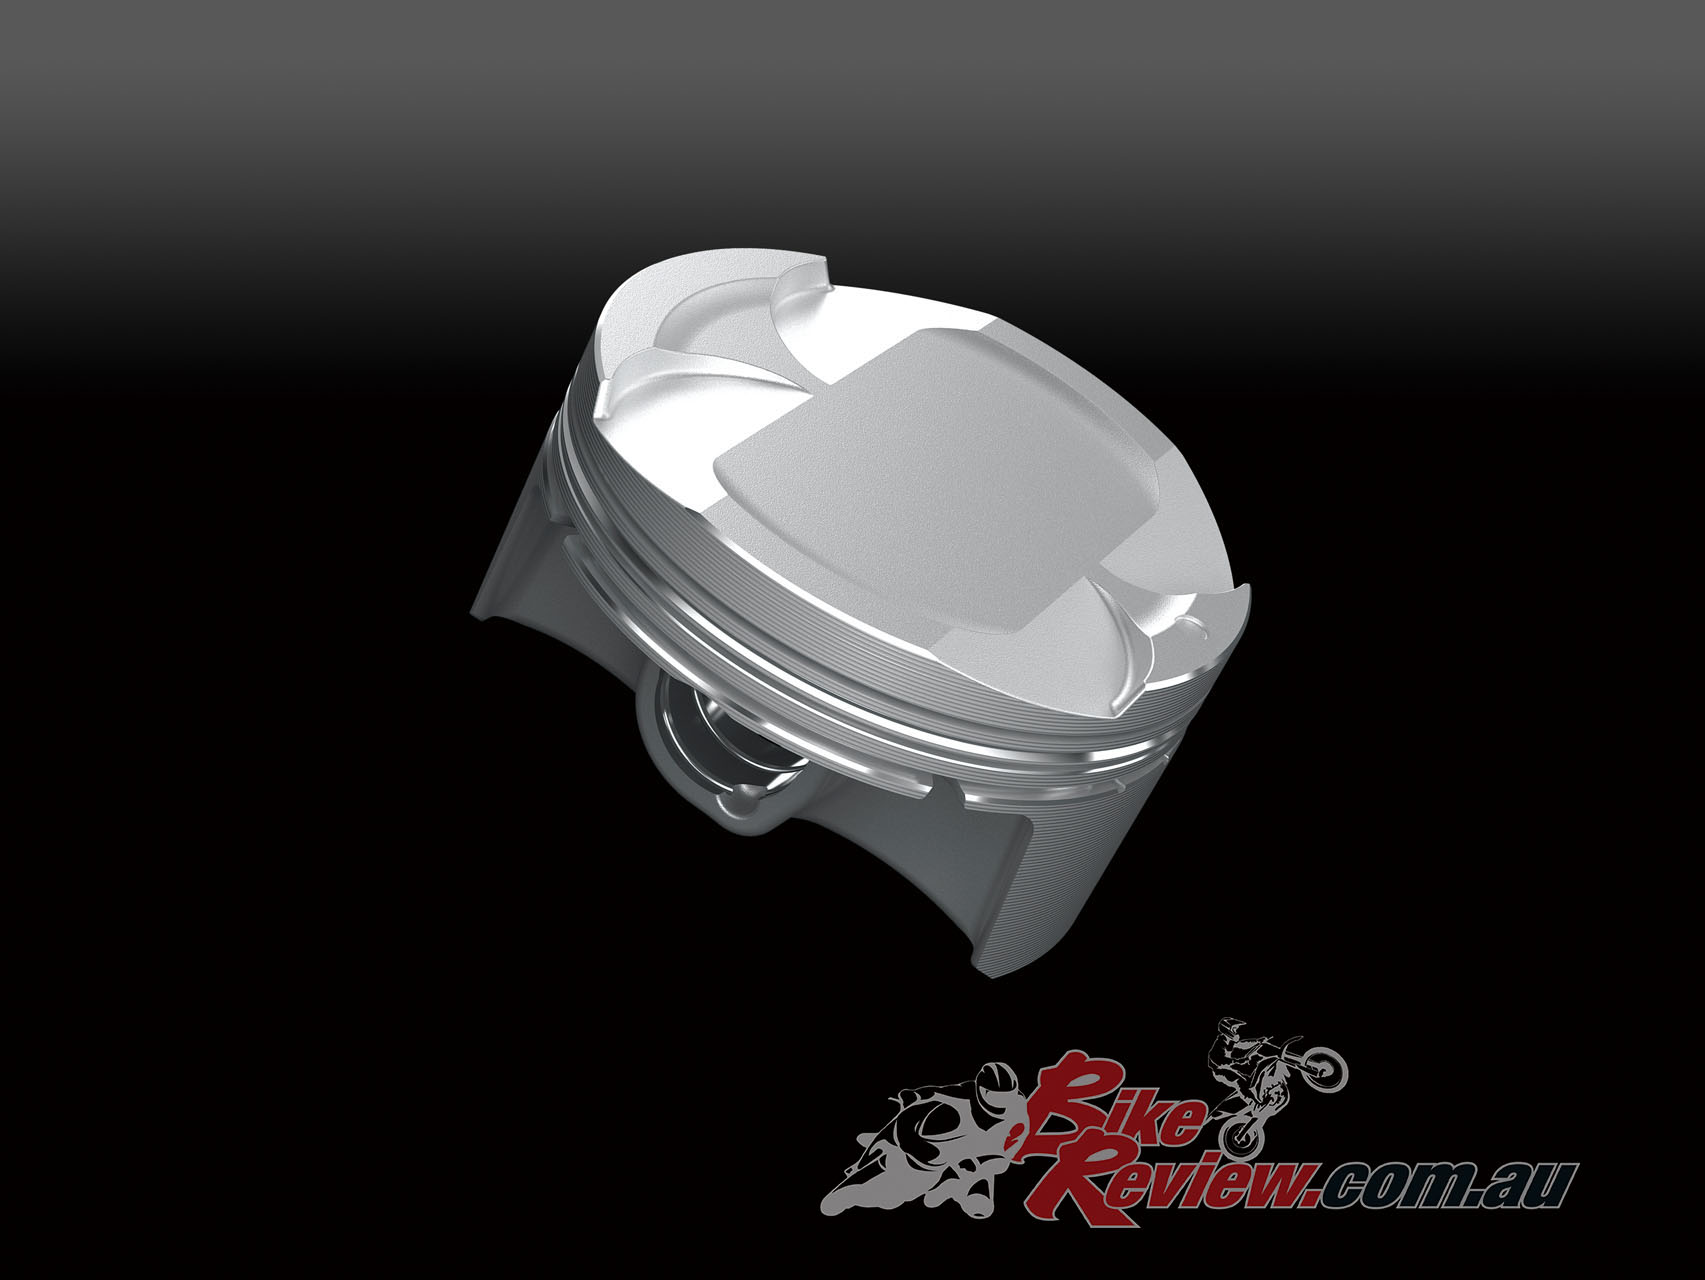 Pistons have revised crowns and are cast in a special Kawasaki technique that offers similar weight to forged